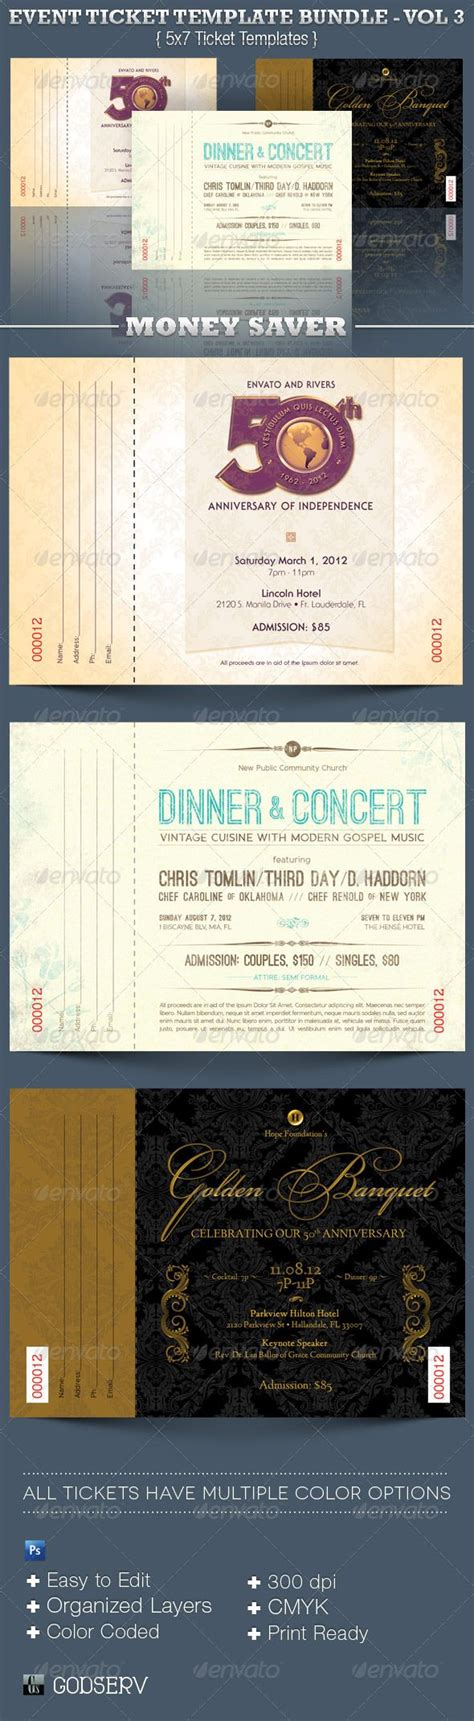 design event tickets photoshop event ticket template bundle volume 3 fonts church and